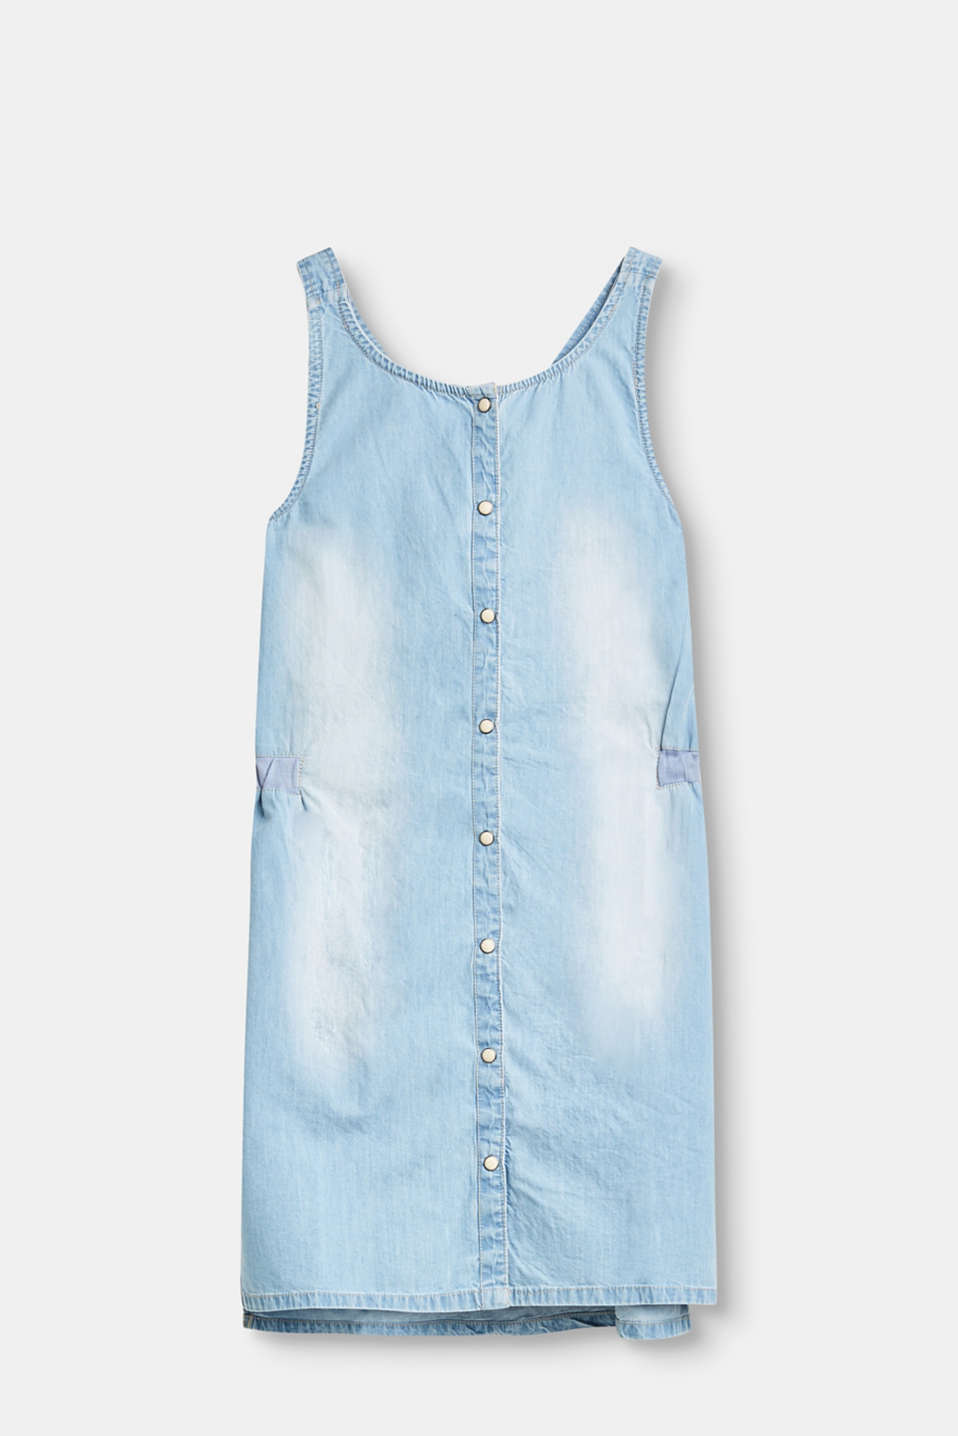 Esprit - Denim dress in a washed out look